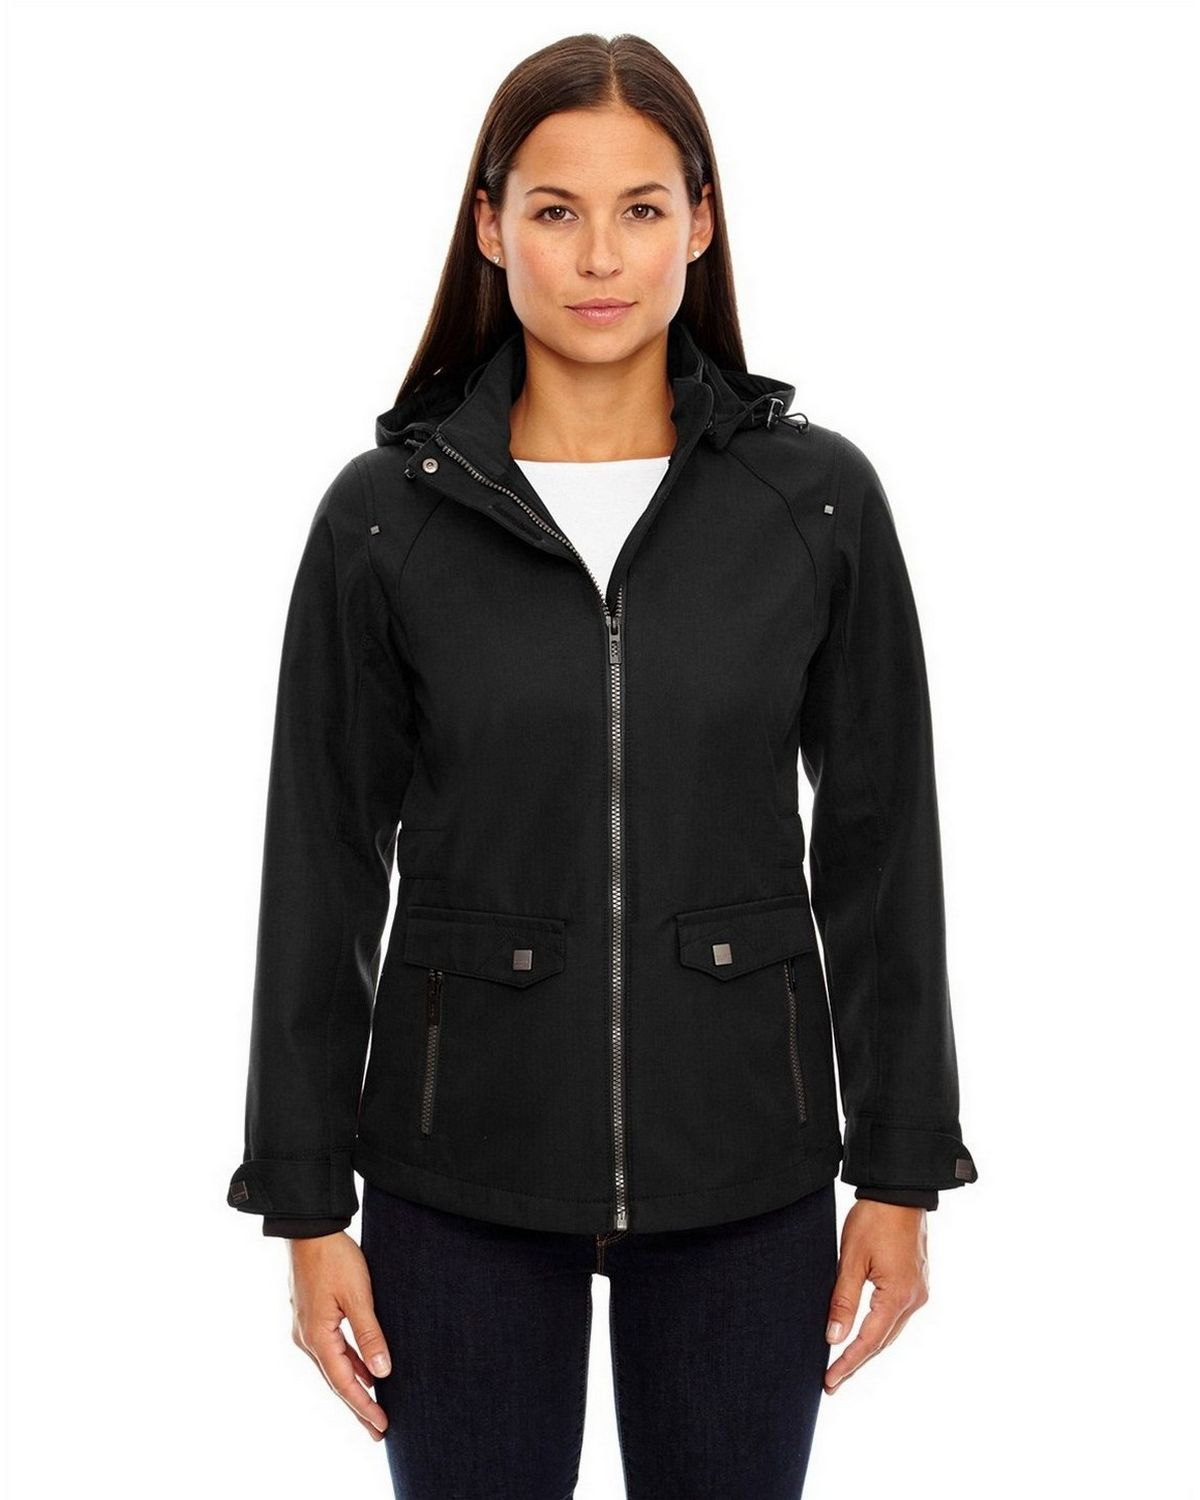 North End Sport Blue 78672 Ladies Jacket - Black - XS 78672